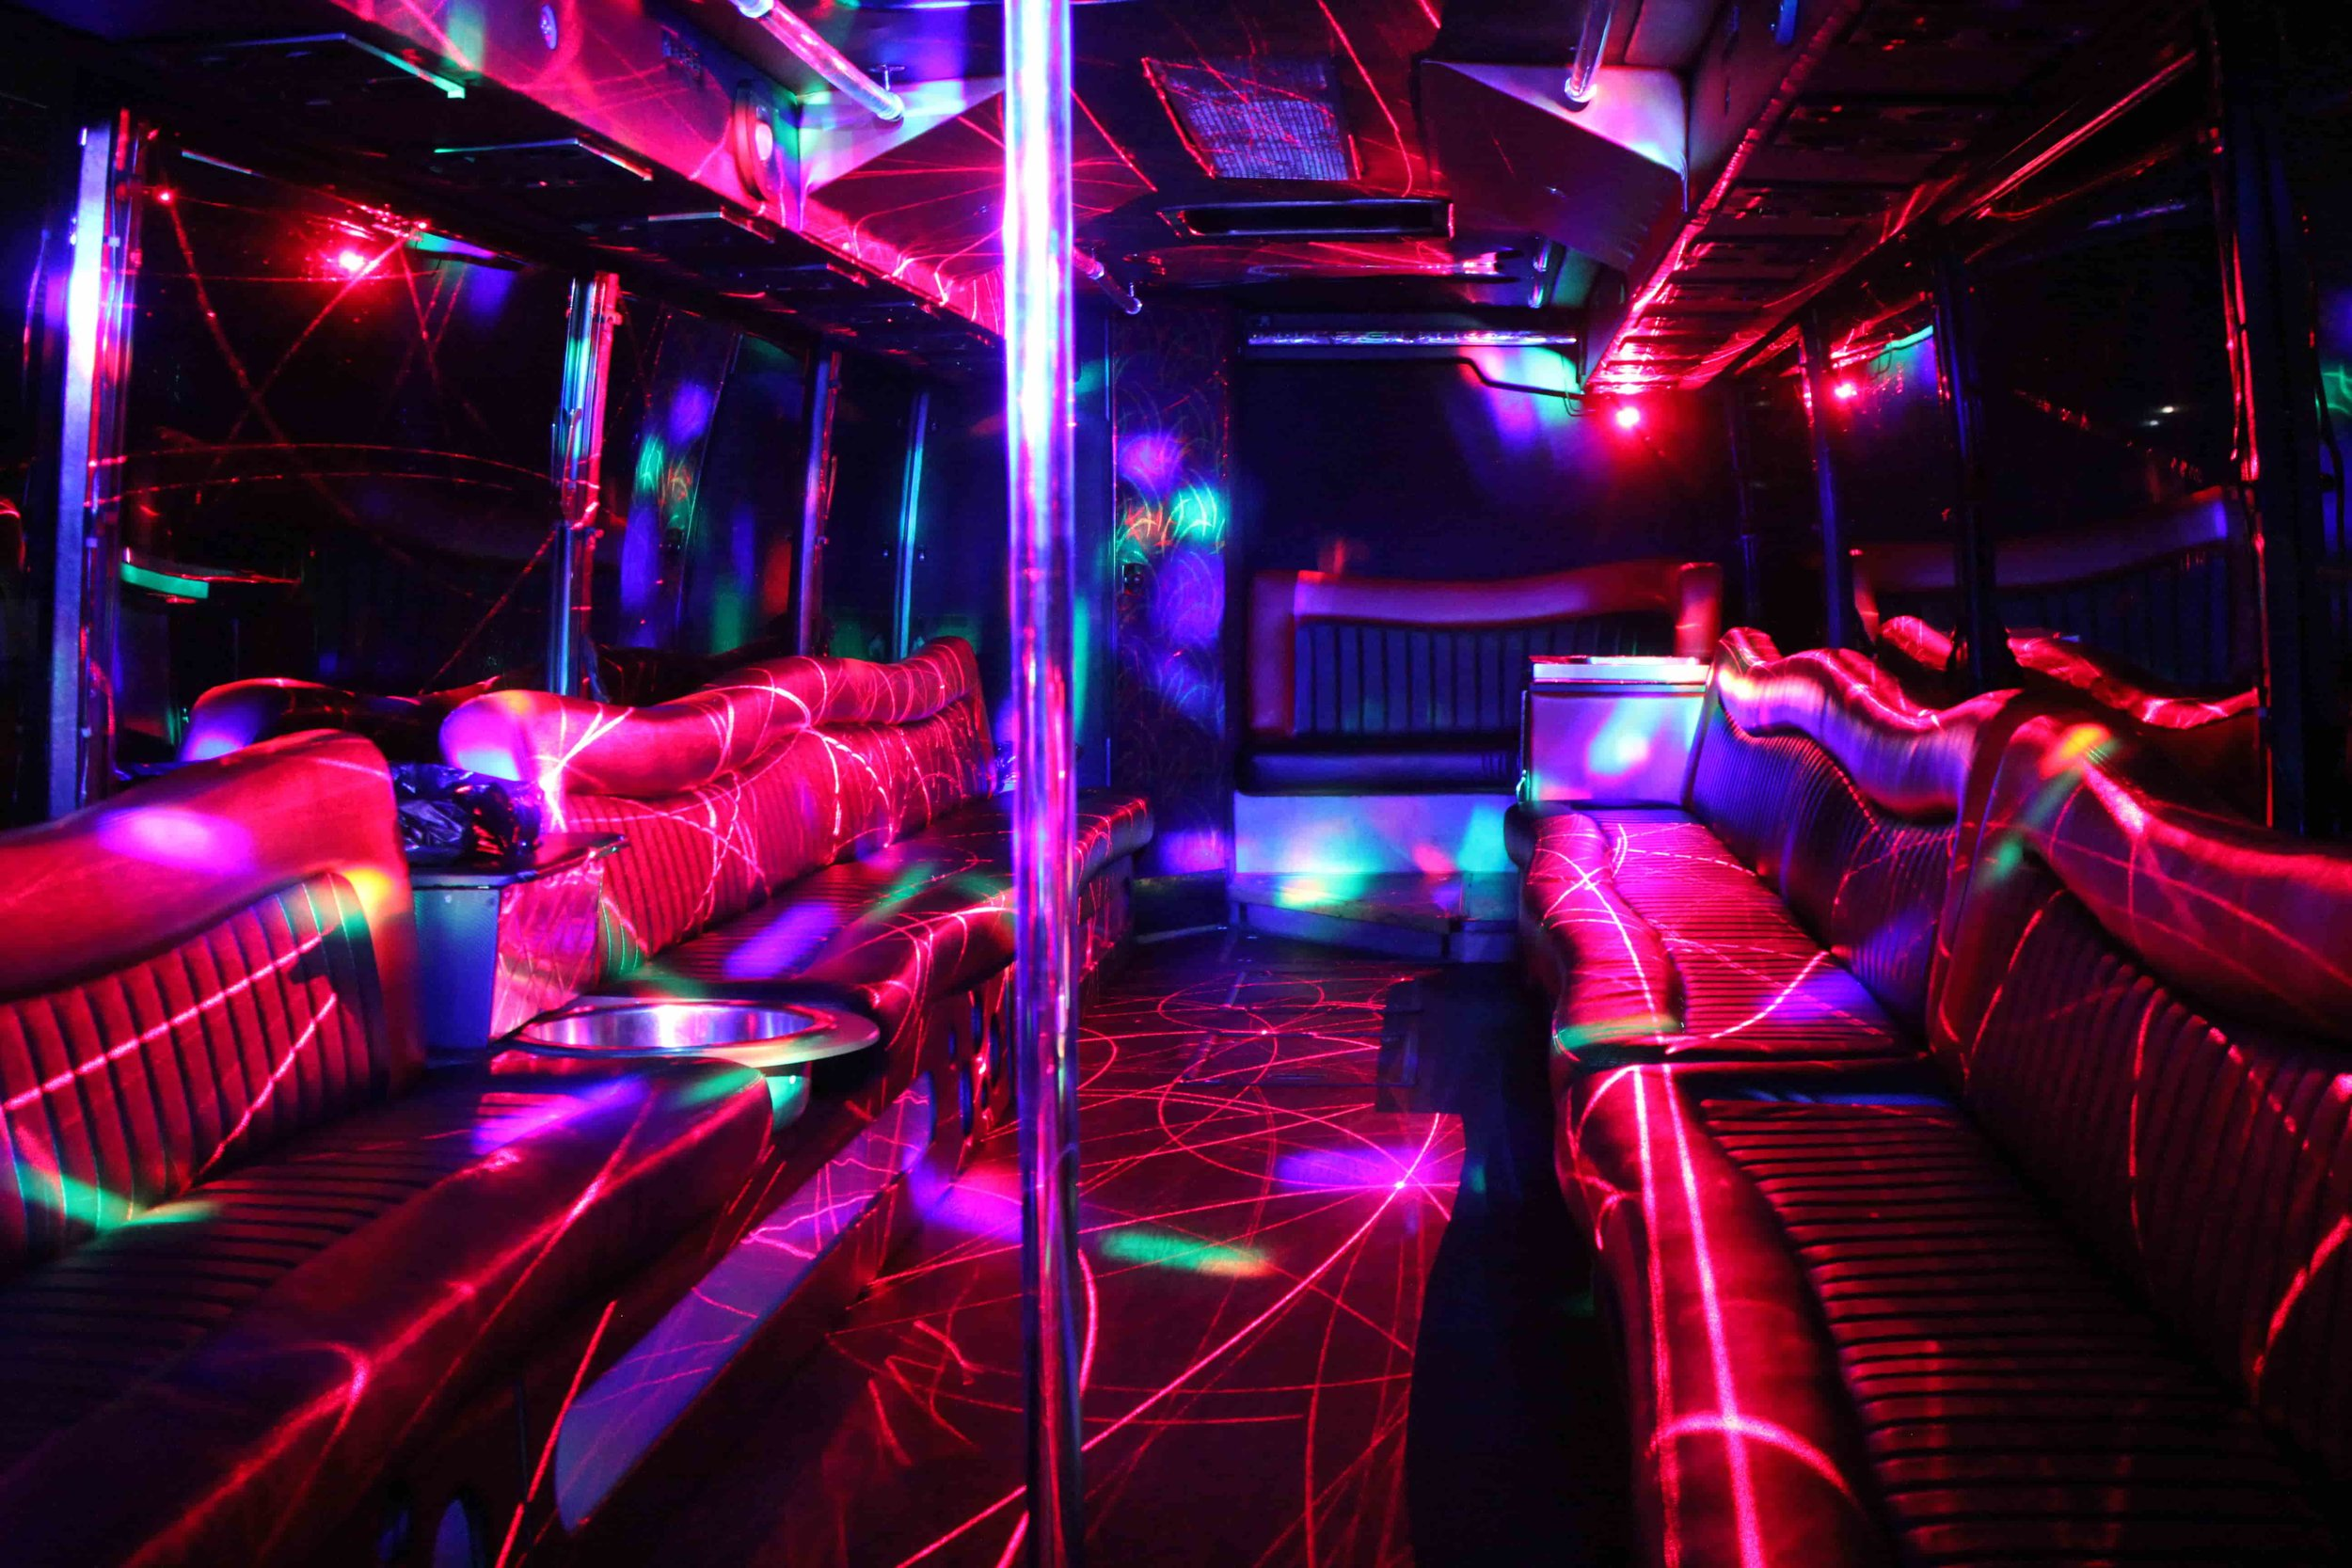 Patriot Laser Light Craziness on Party Bus